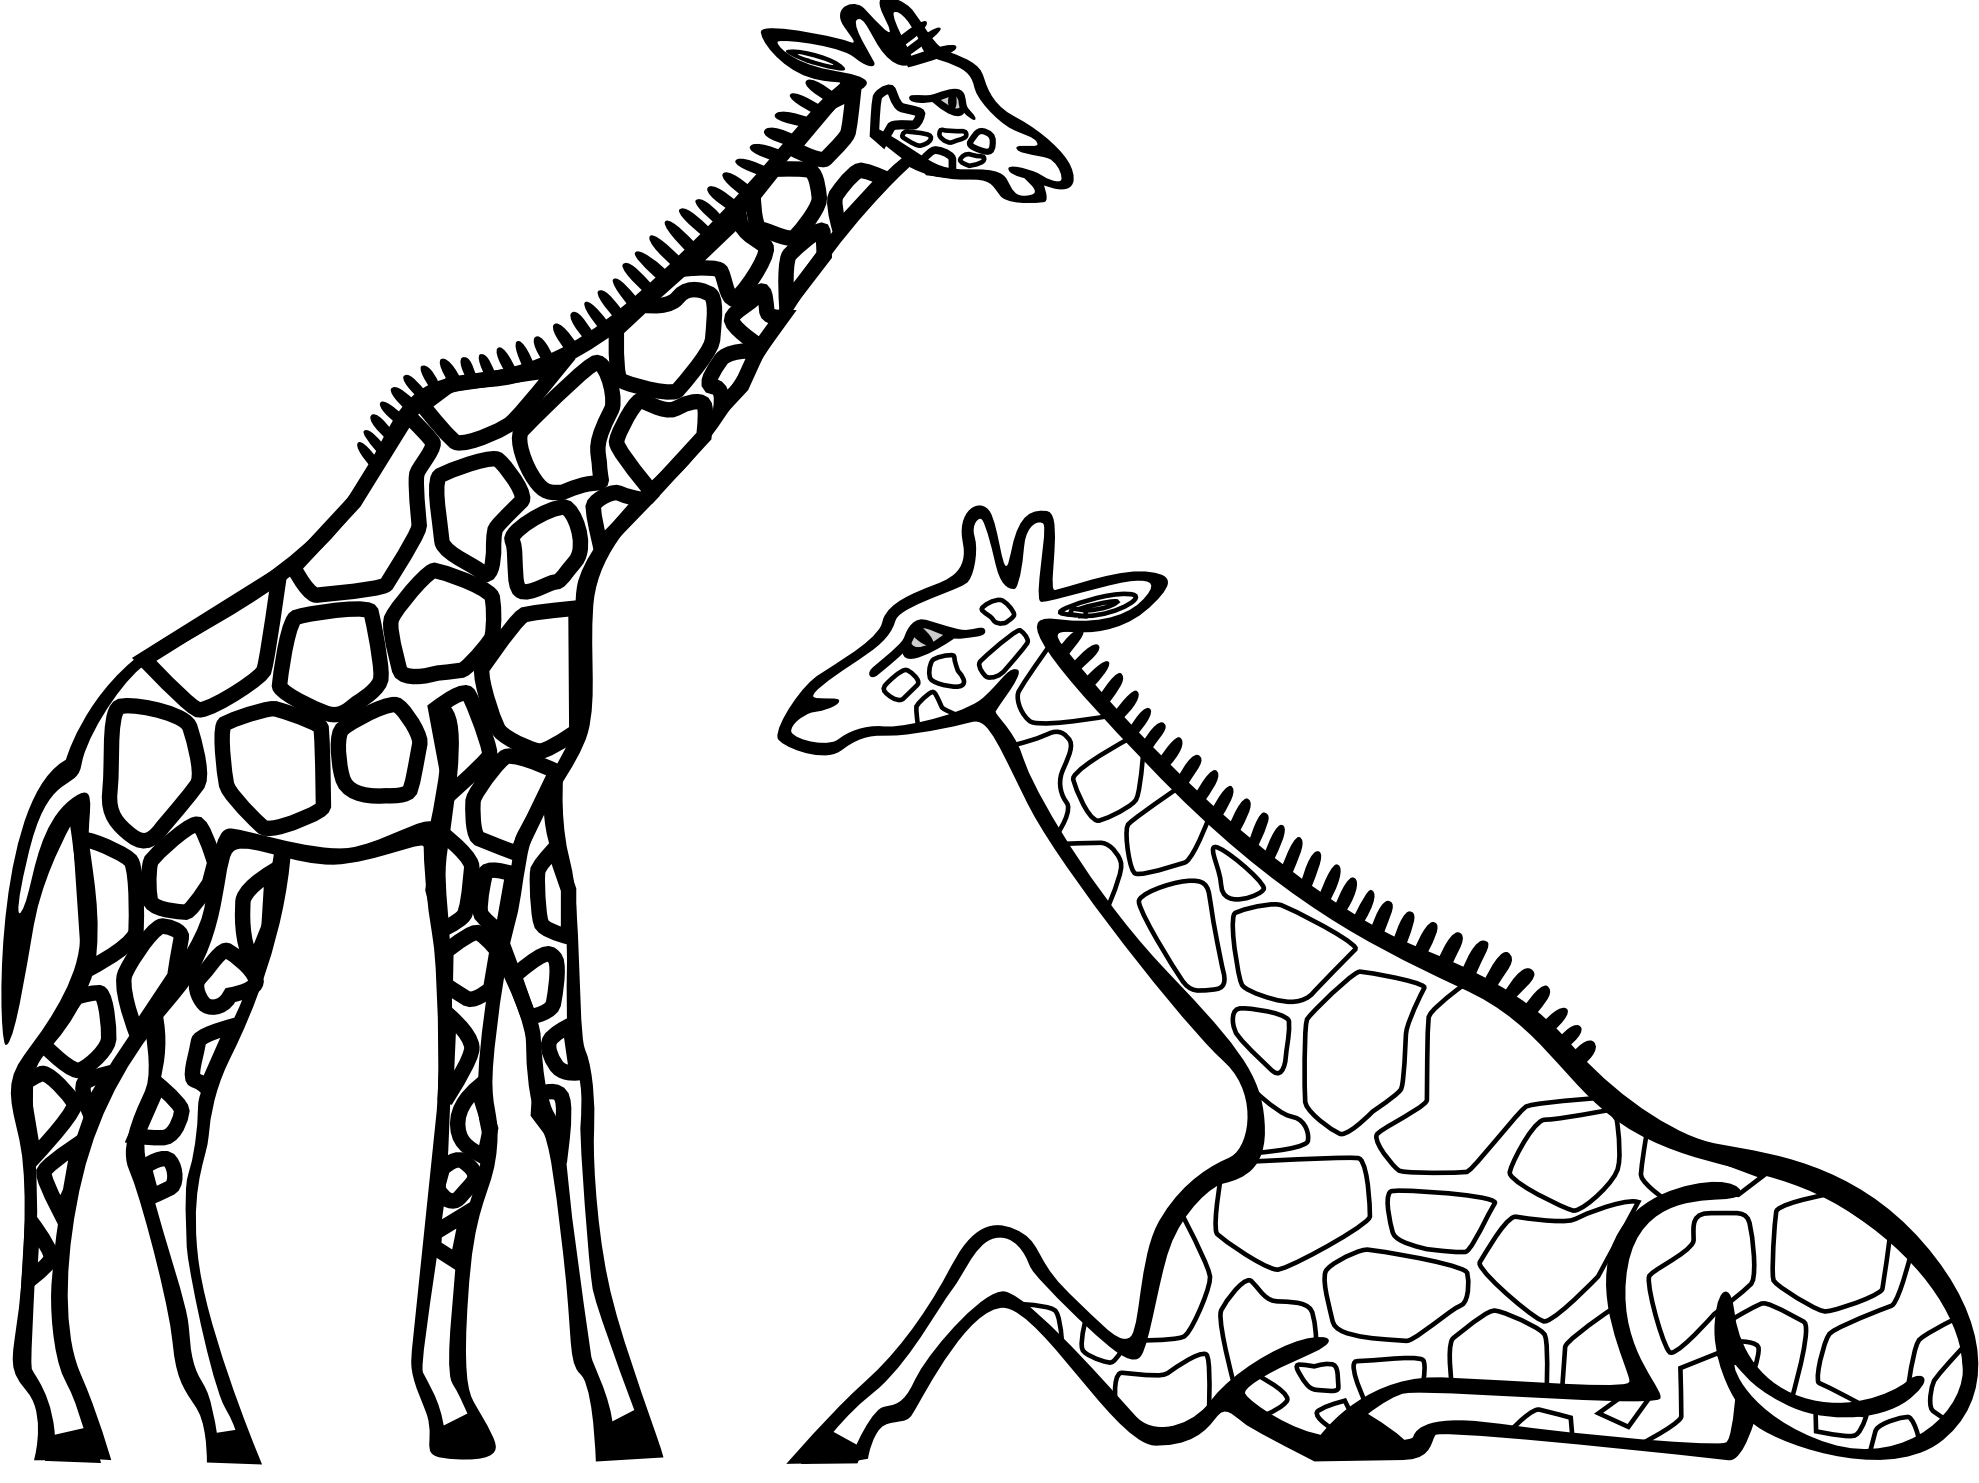 Zebra clipart two Images For Free Wars Art